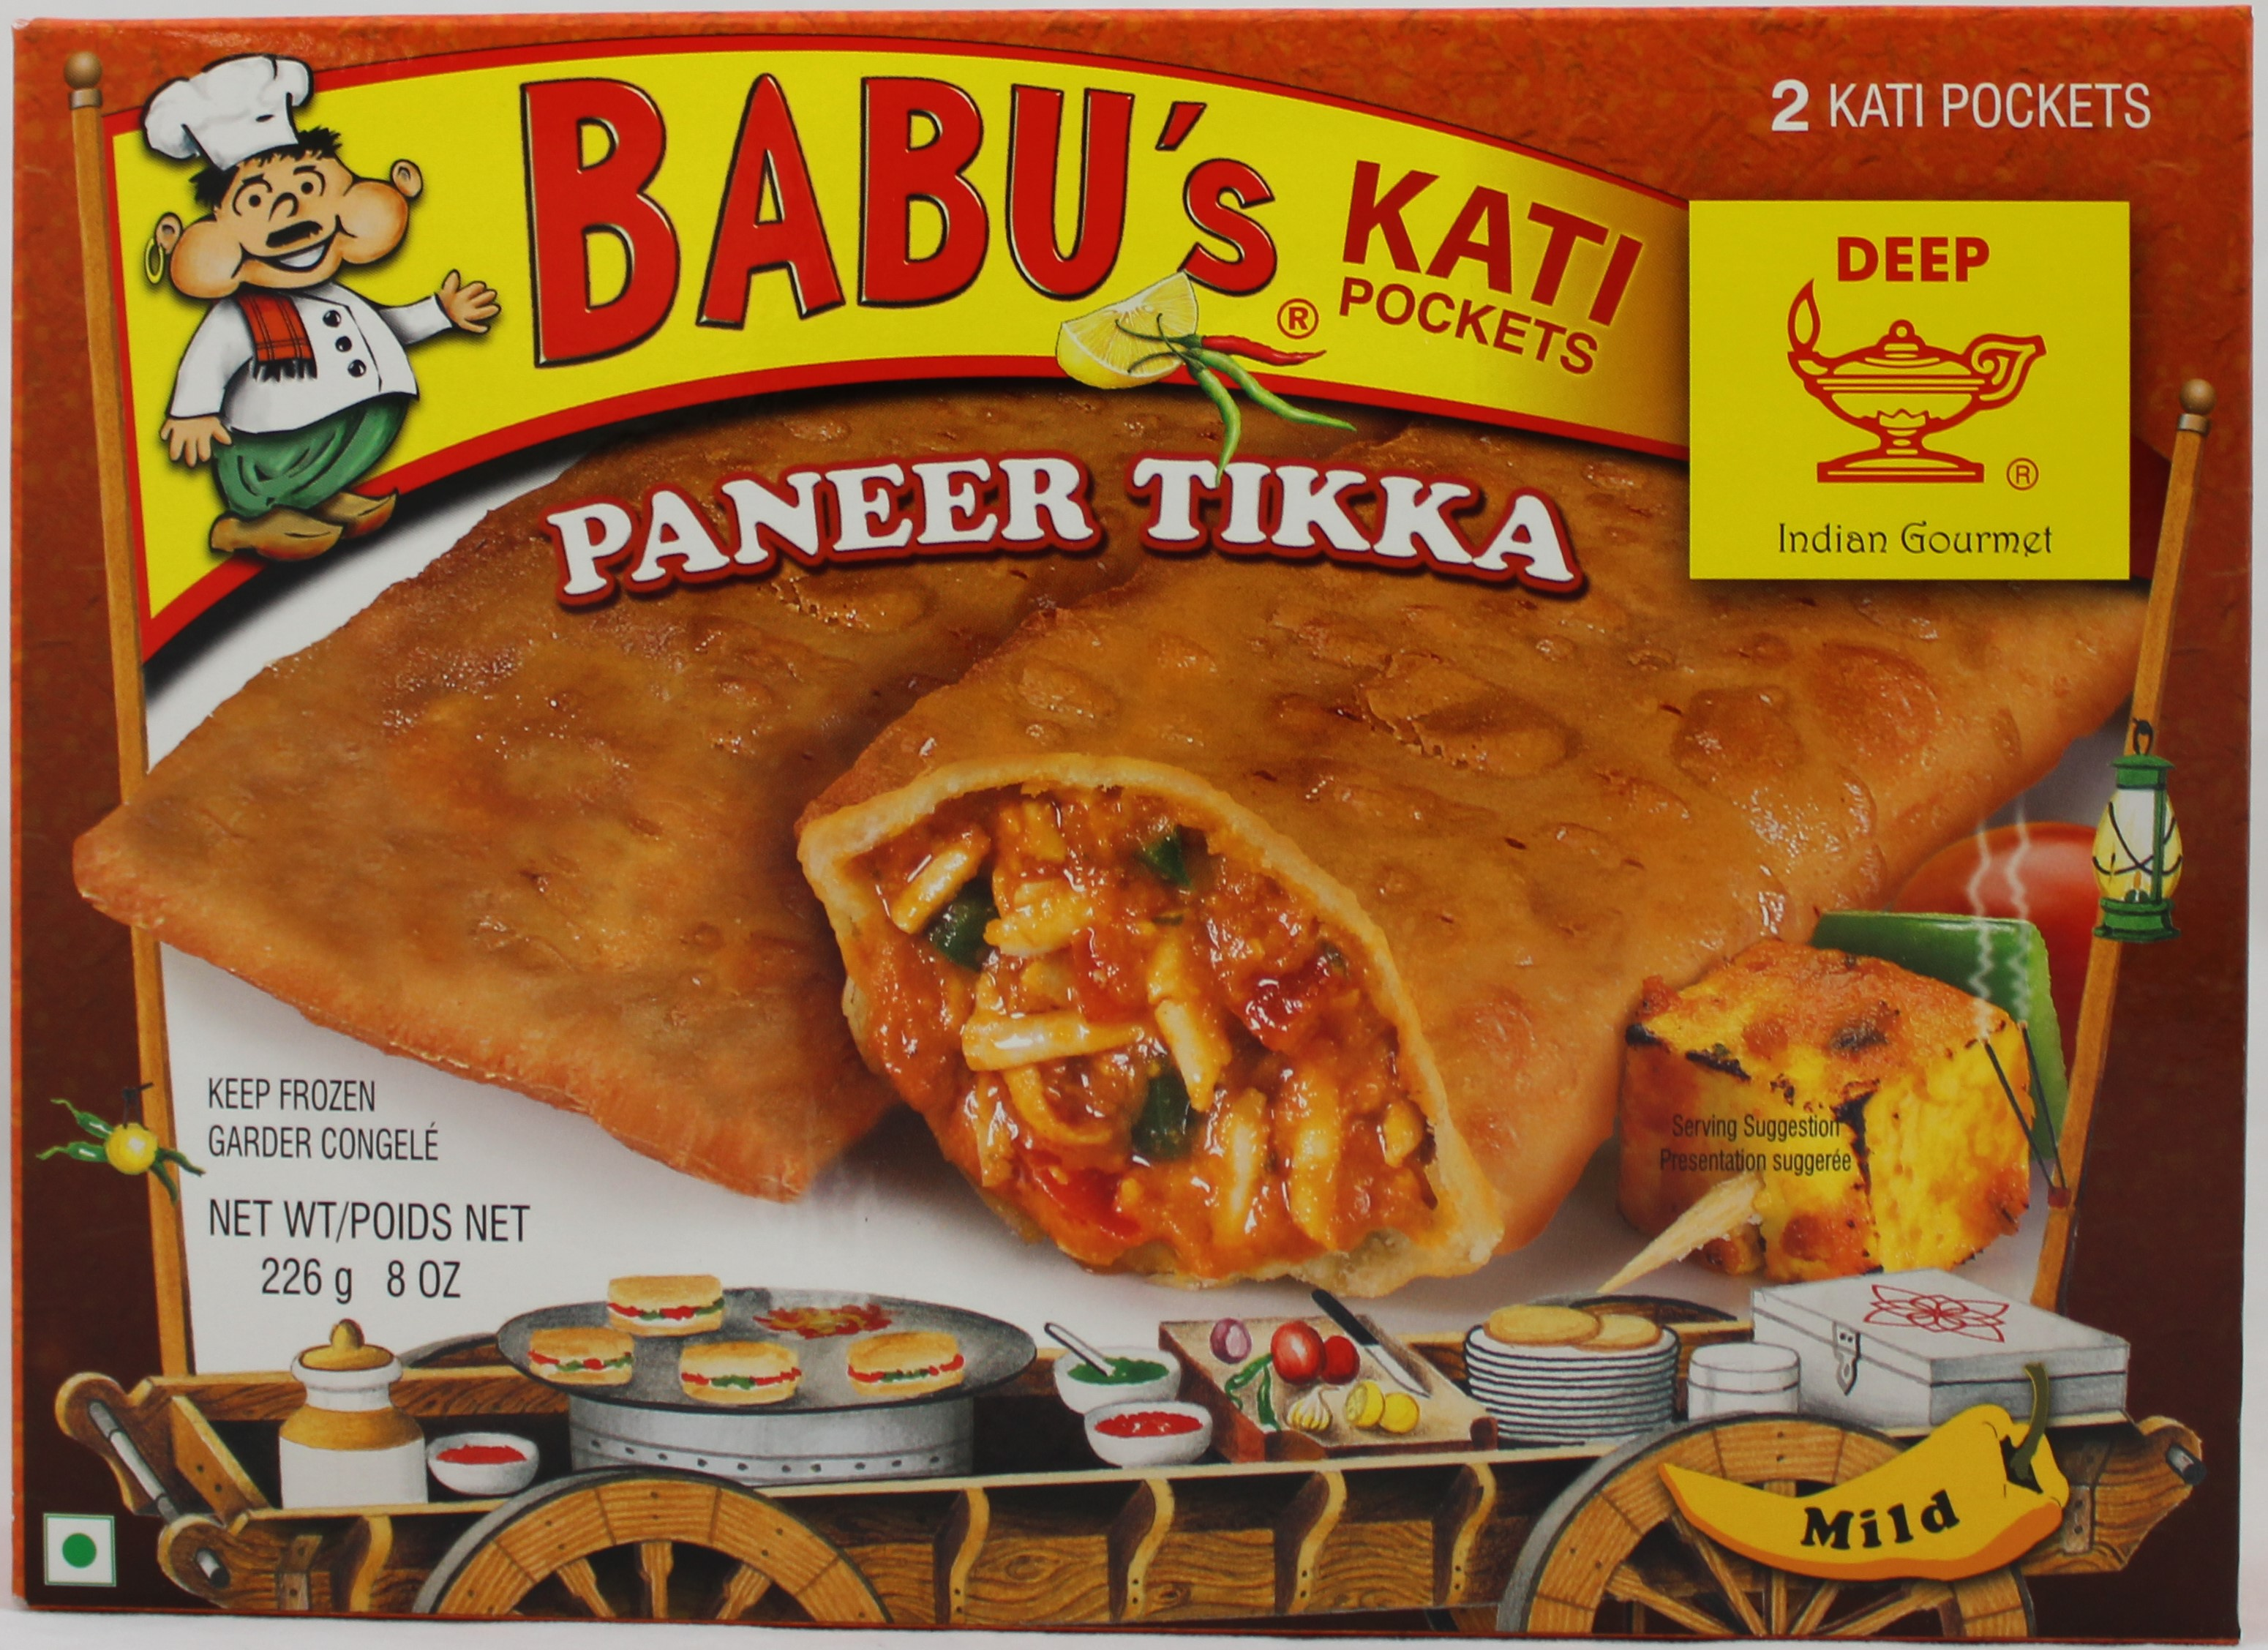 Paneer Tikka 2 Pocket Sandwch 8oz